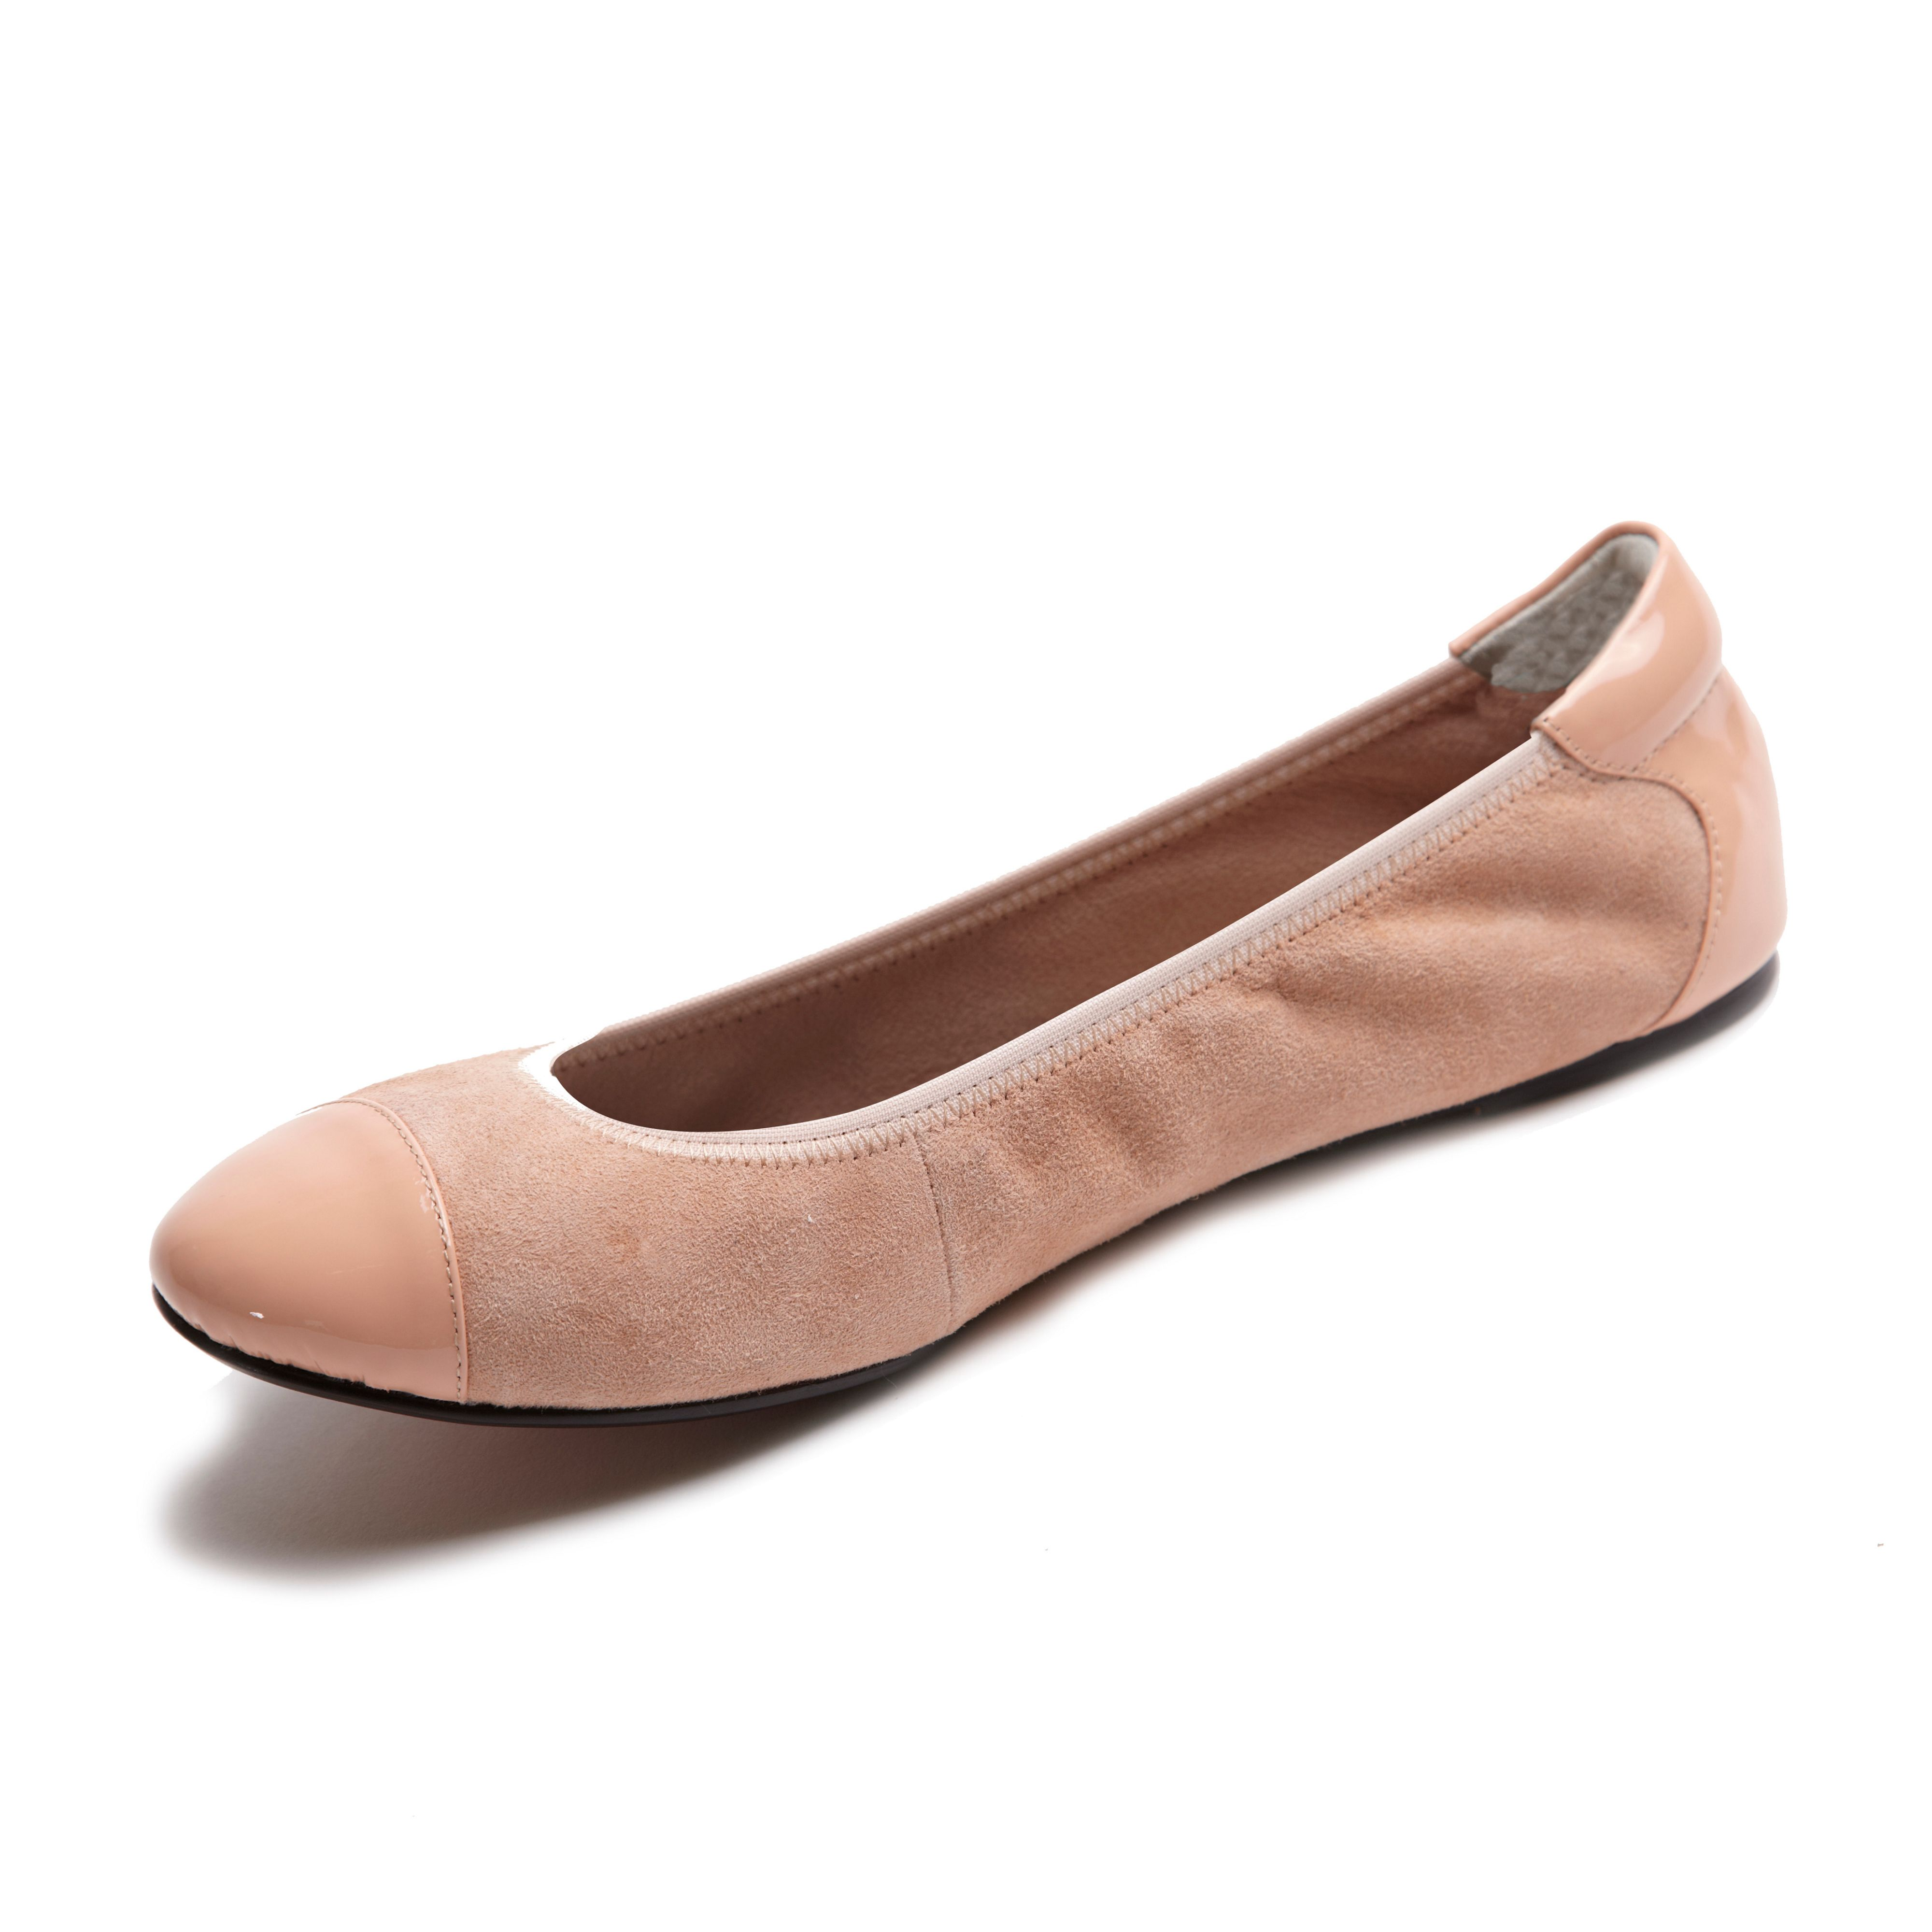 Harrow pink leather foldable ballerina